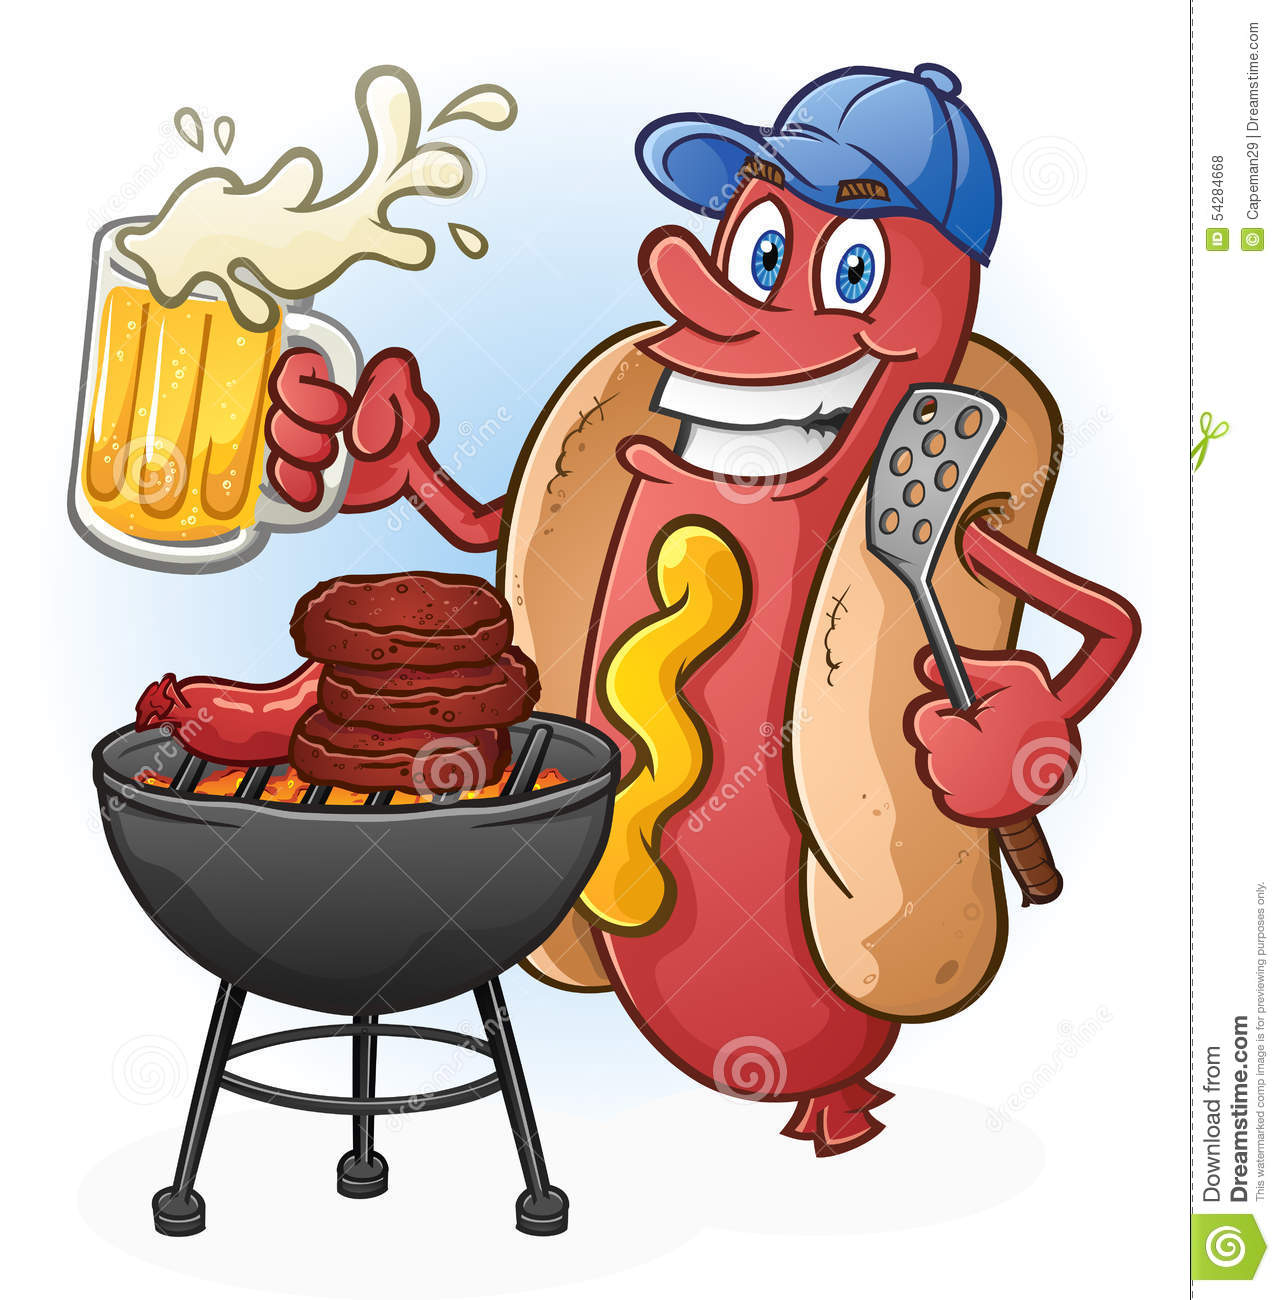 Grilling Hot Dogs Clip Art | www.imgkid.com - The Image ...